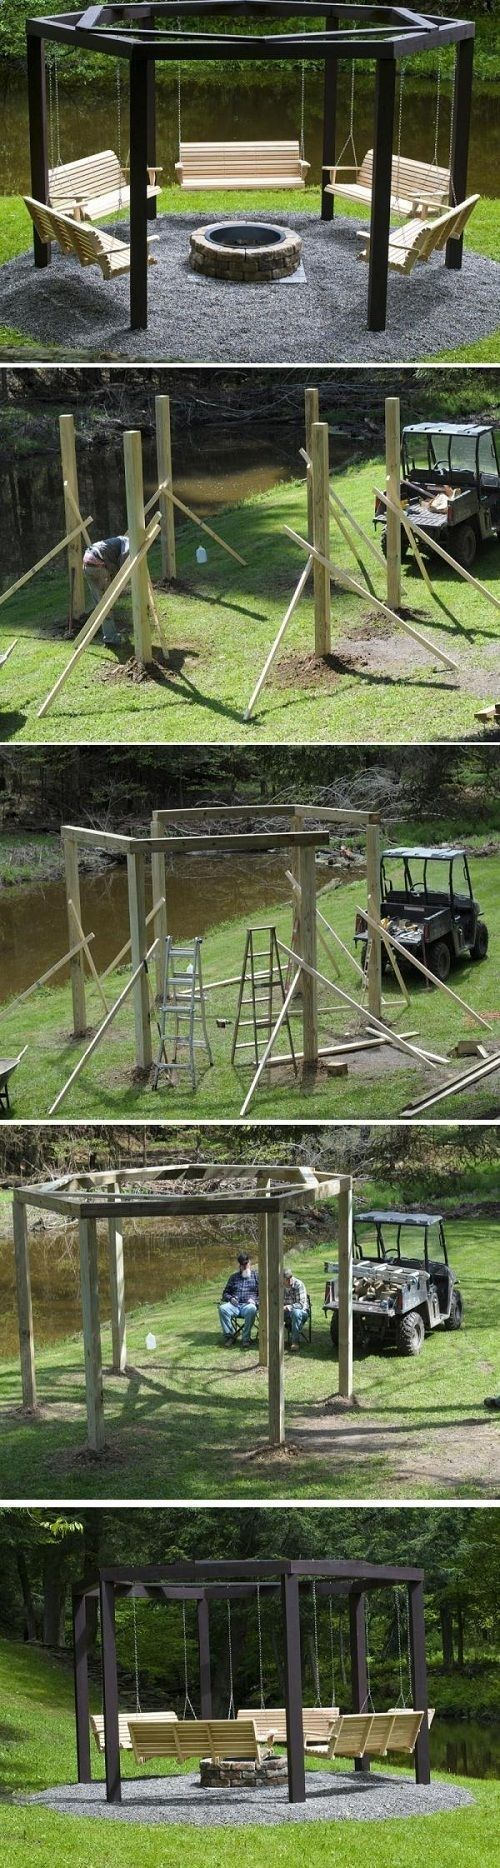 Awesome fire pit swing set this is absolutely the best idea ever